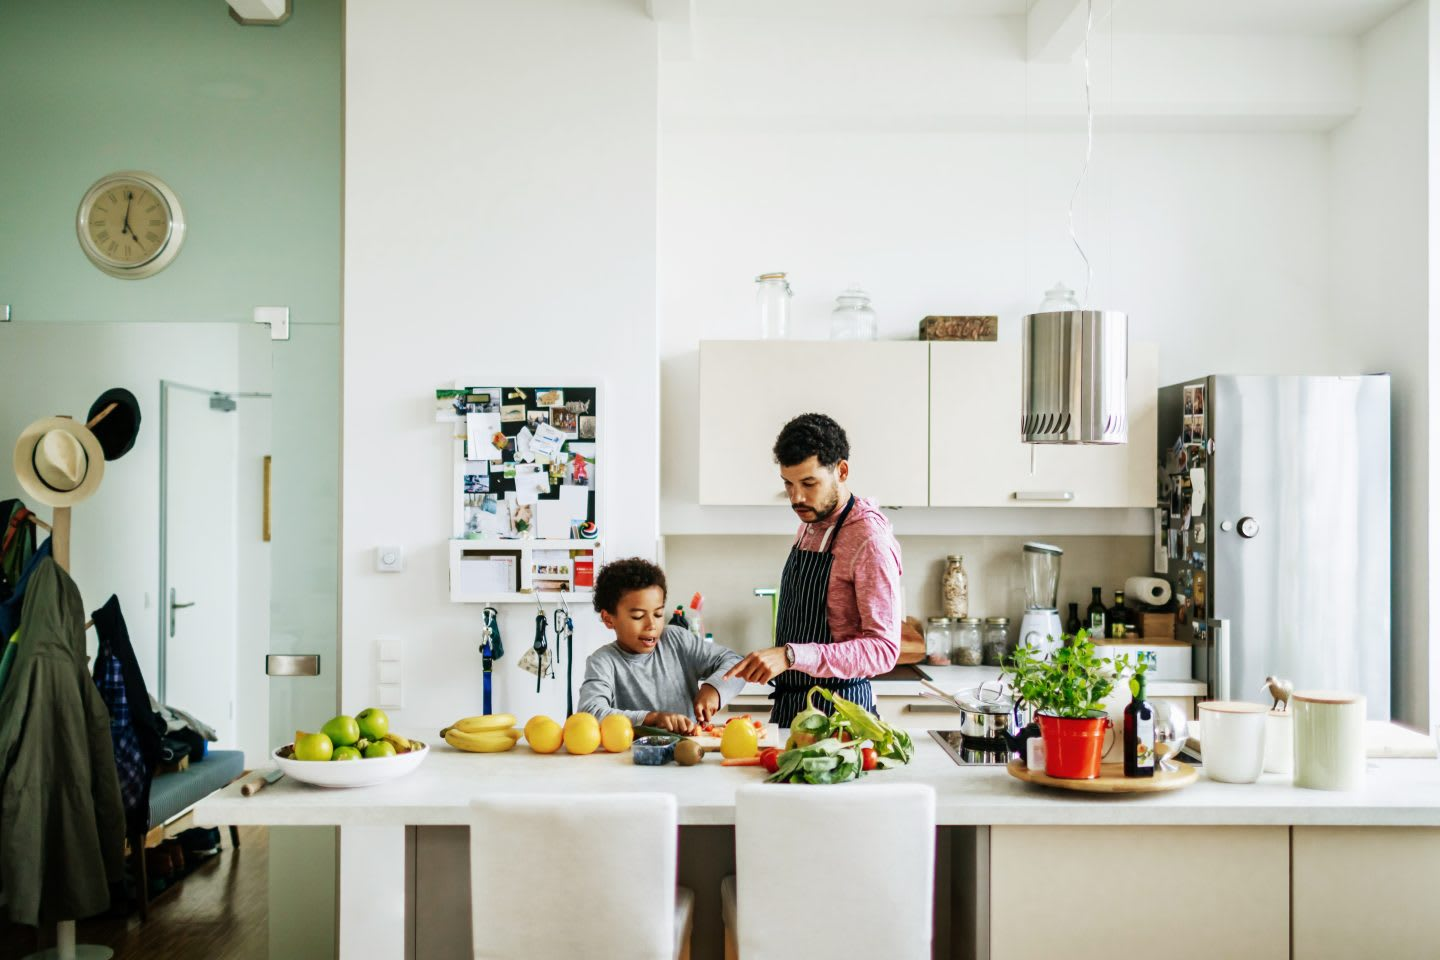 A father and son at home in the kitchen helping each other prepare some lunch.